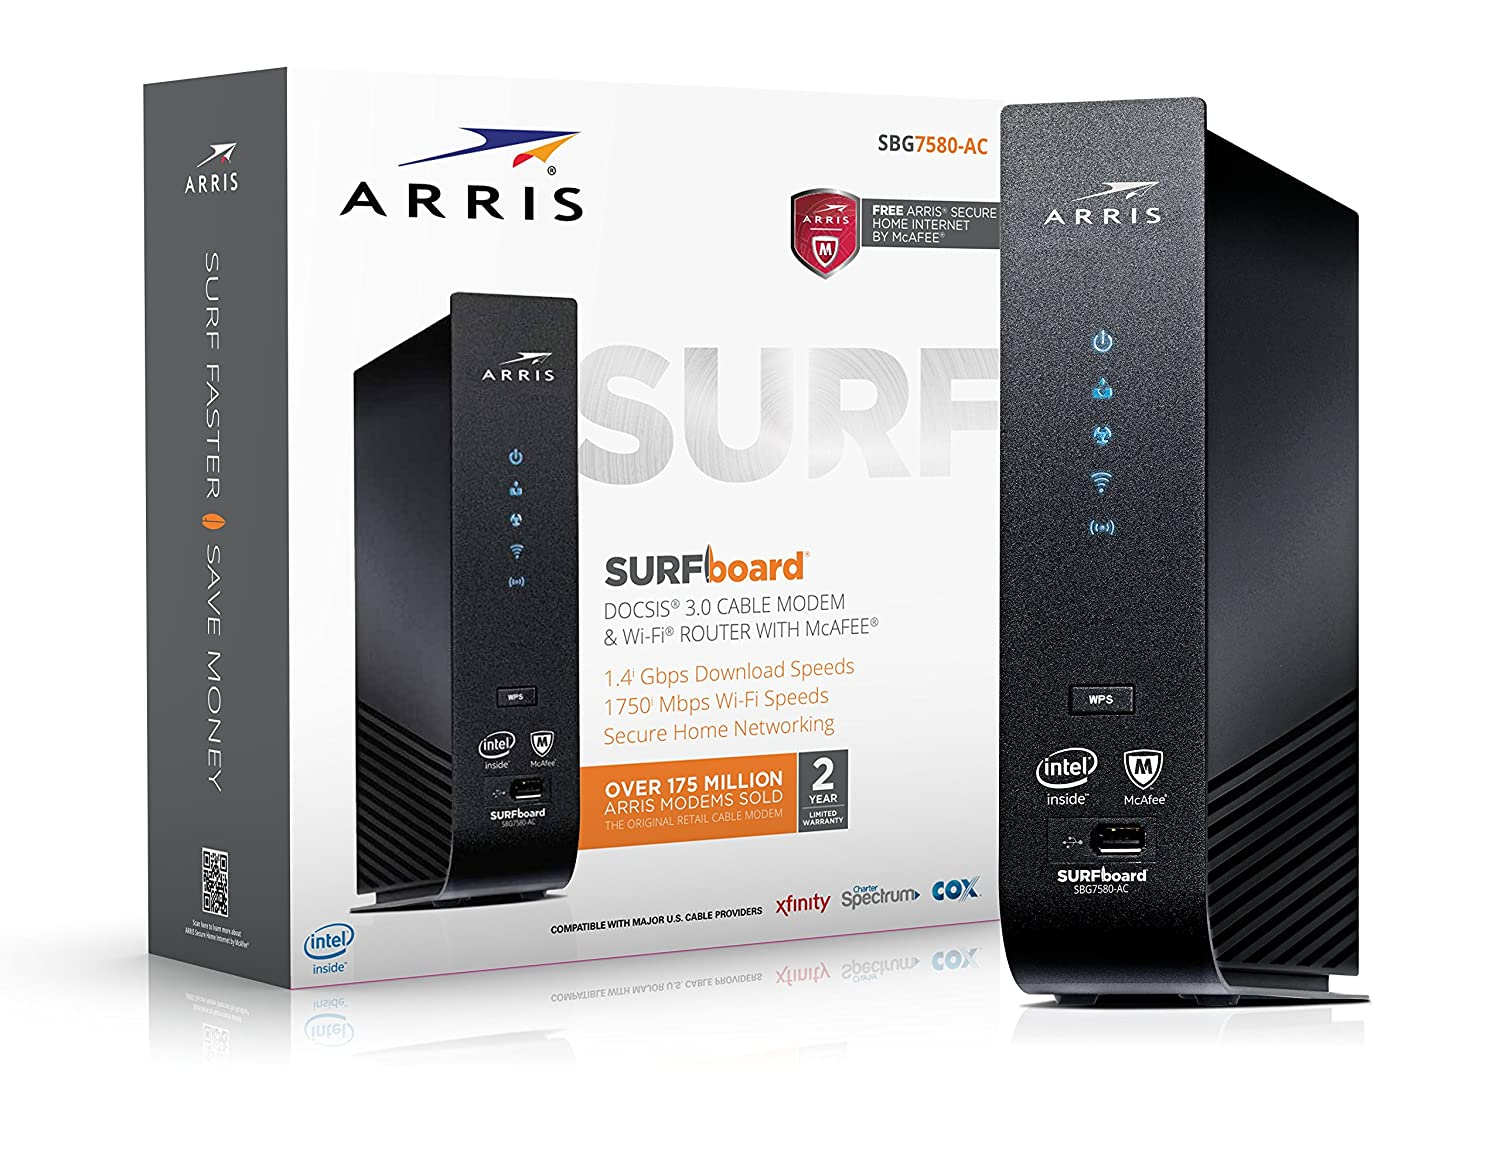 Arris Sur Fboard Sbg7580 Ac 32x8 Docsis 3.0 Cable Modem/Ac1750 Wi Fi Router/Mc Afee Whole Home Internet Protection  Black by Arris